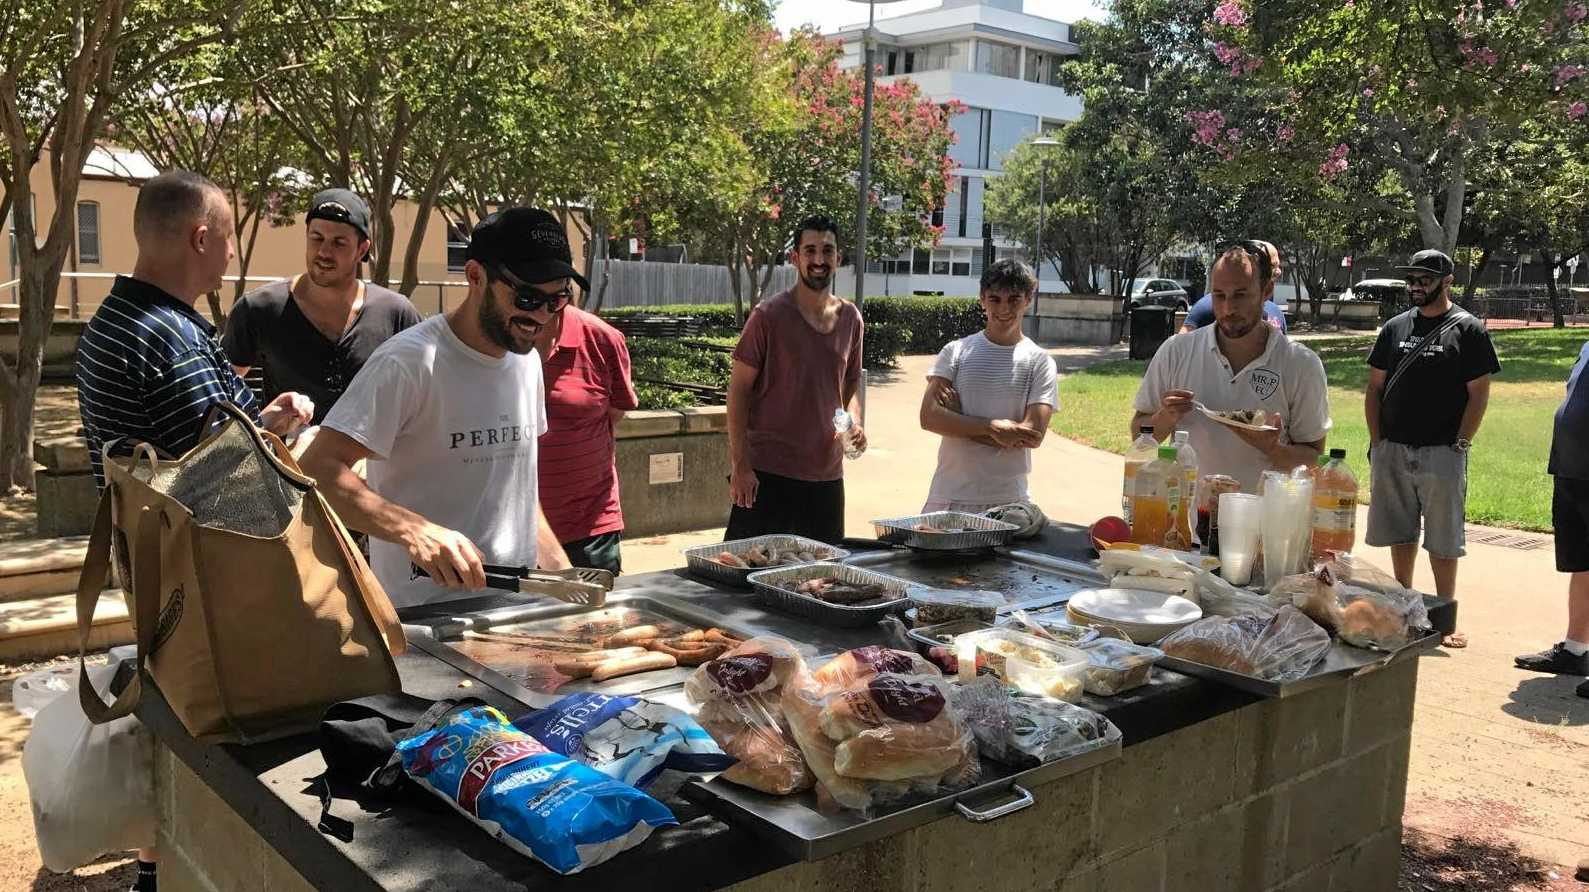 Grassroots charity Mr Perfect is looking to create a regular barbecue get-together in Lismore to help promote good mental health for men.